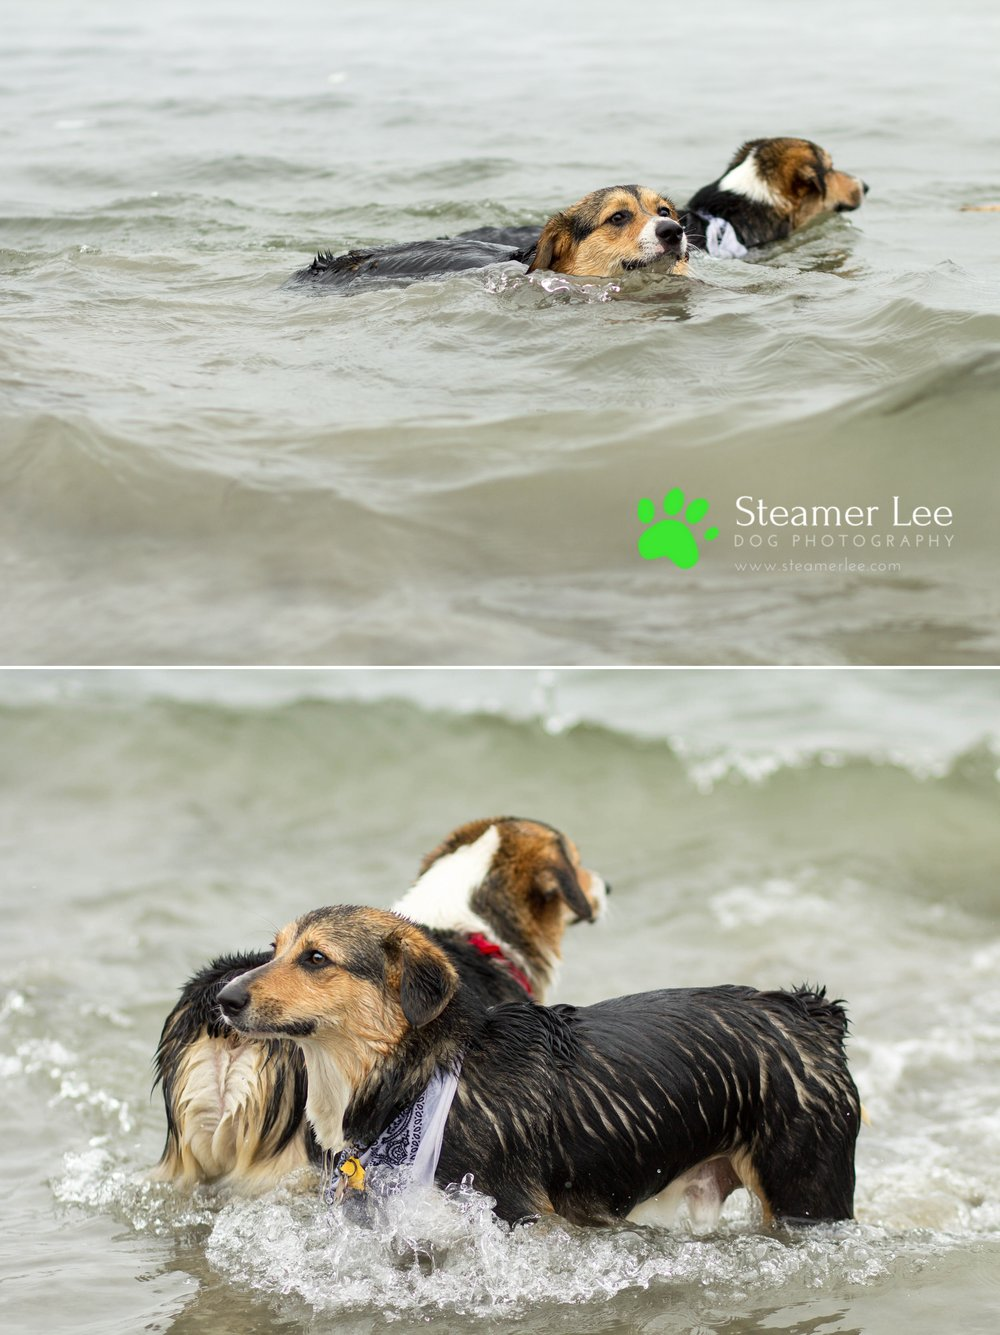 Steamer Lee Dog Photography - July 2017 So Cal Corgi Beach Day - Vol.2 - 13.jpg